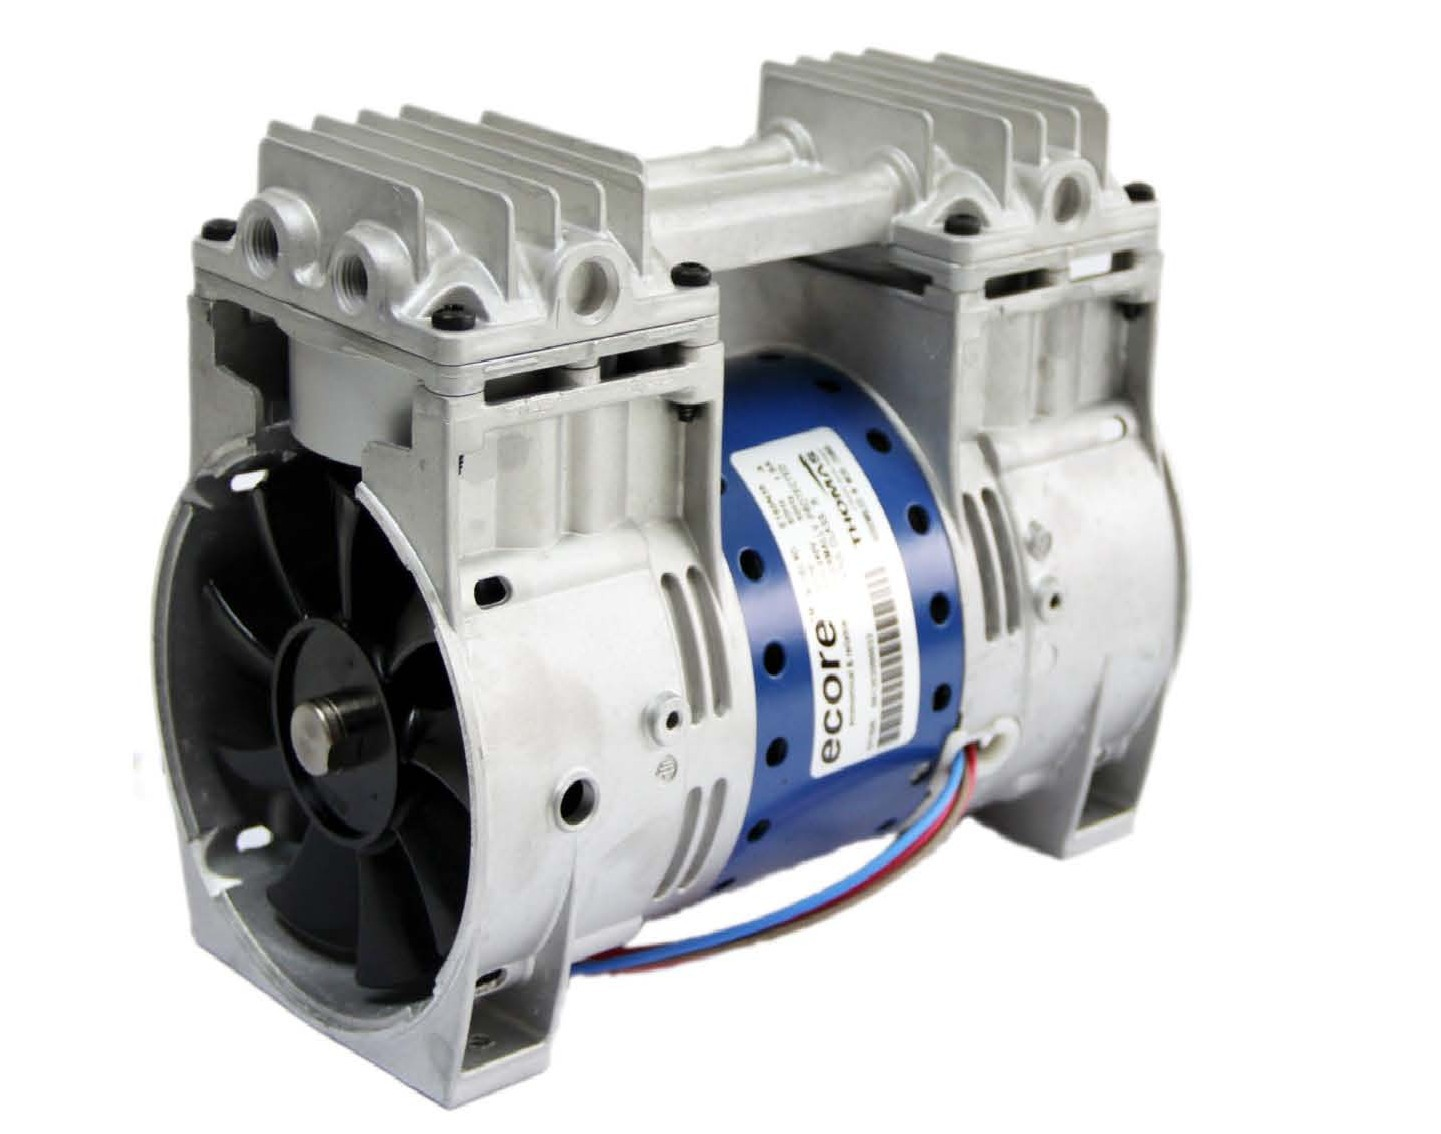 Thomas E160N42 Oil-free vacuum pump for built-in non-standard automation equipment for cutting machines manka care 110v 220v ac 50l min 165w small electric piston vacuum pump silent pumps oil less oil free compressing pump